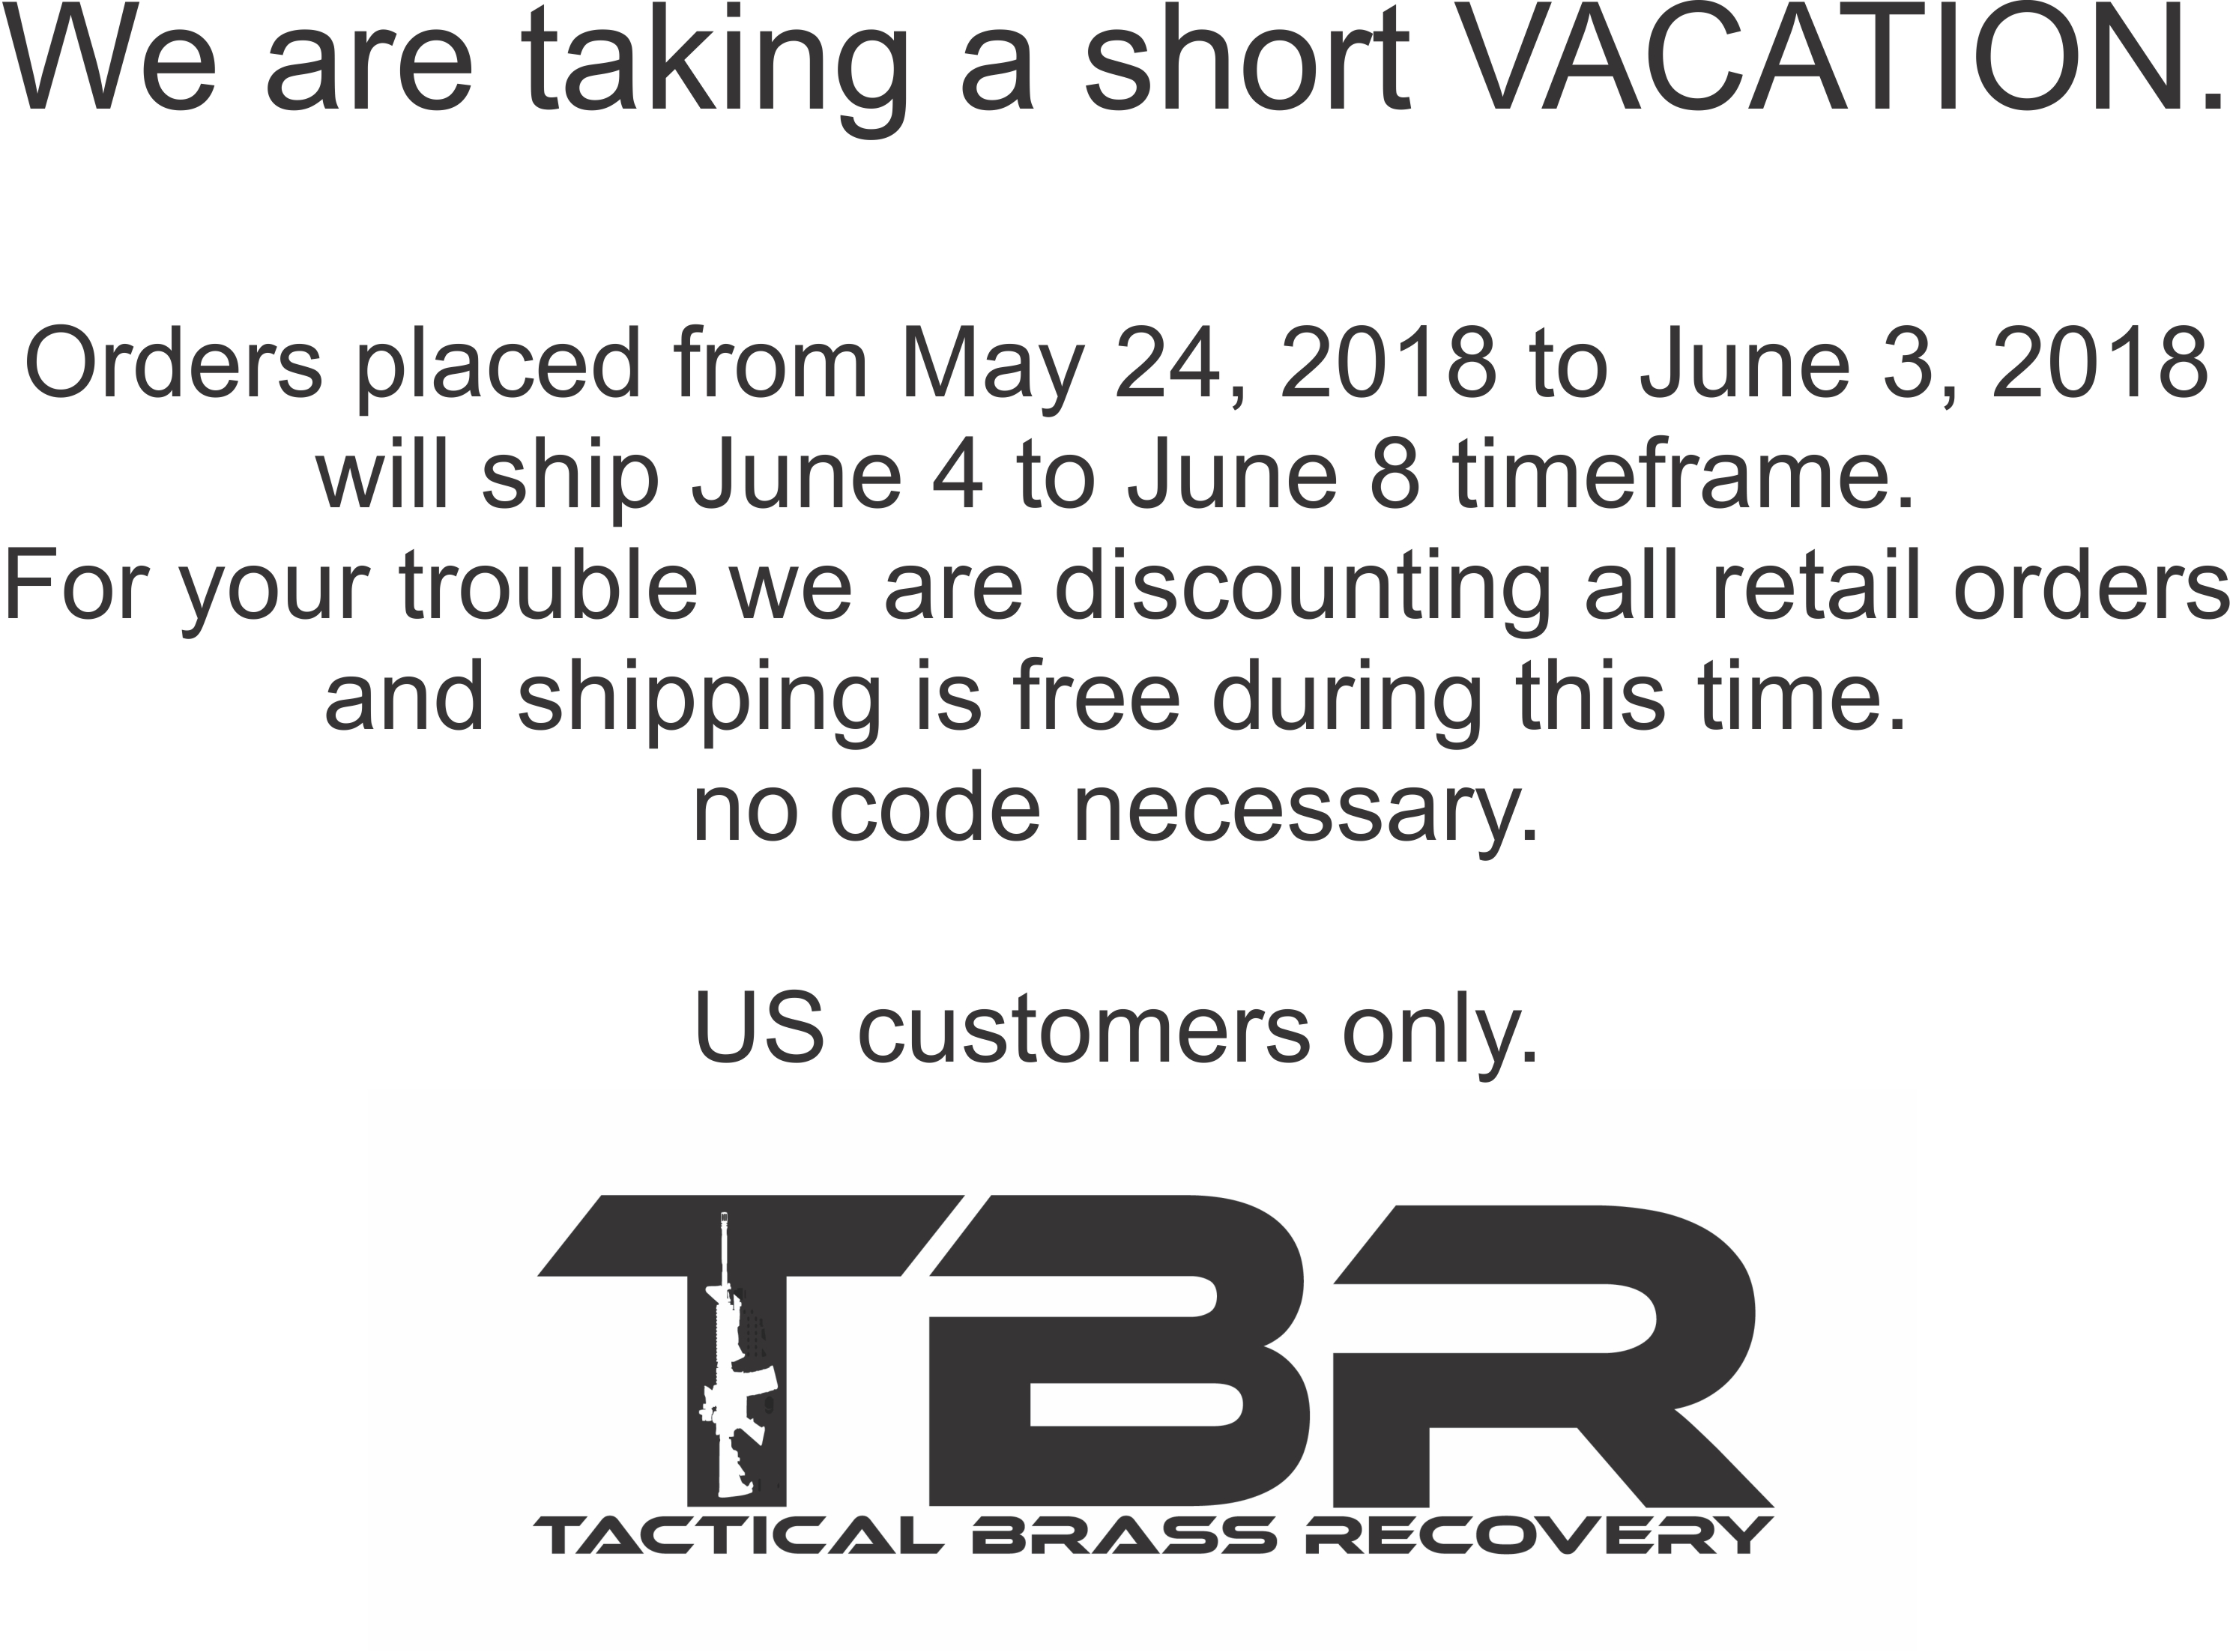 We are on vacation next week.  so orders placed from May 24, 2018 to June 3, 2018 will ship June 4 to June 8 timeframe. For your trouble we are discounting all products and shipping is free during this time.  no code necessary.